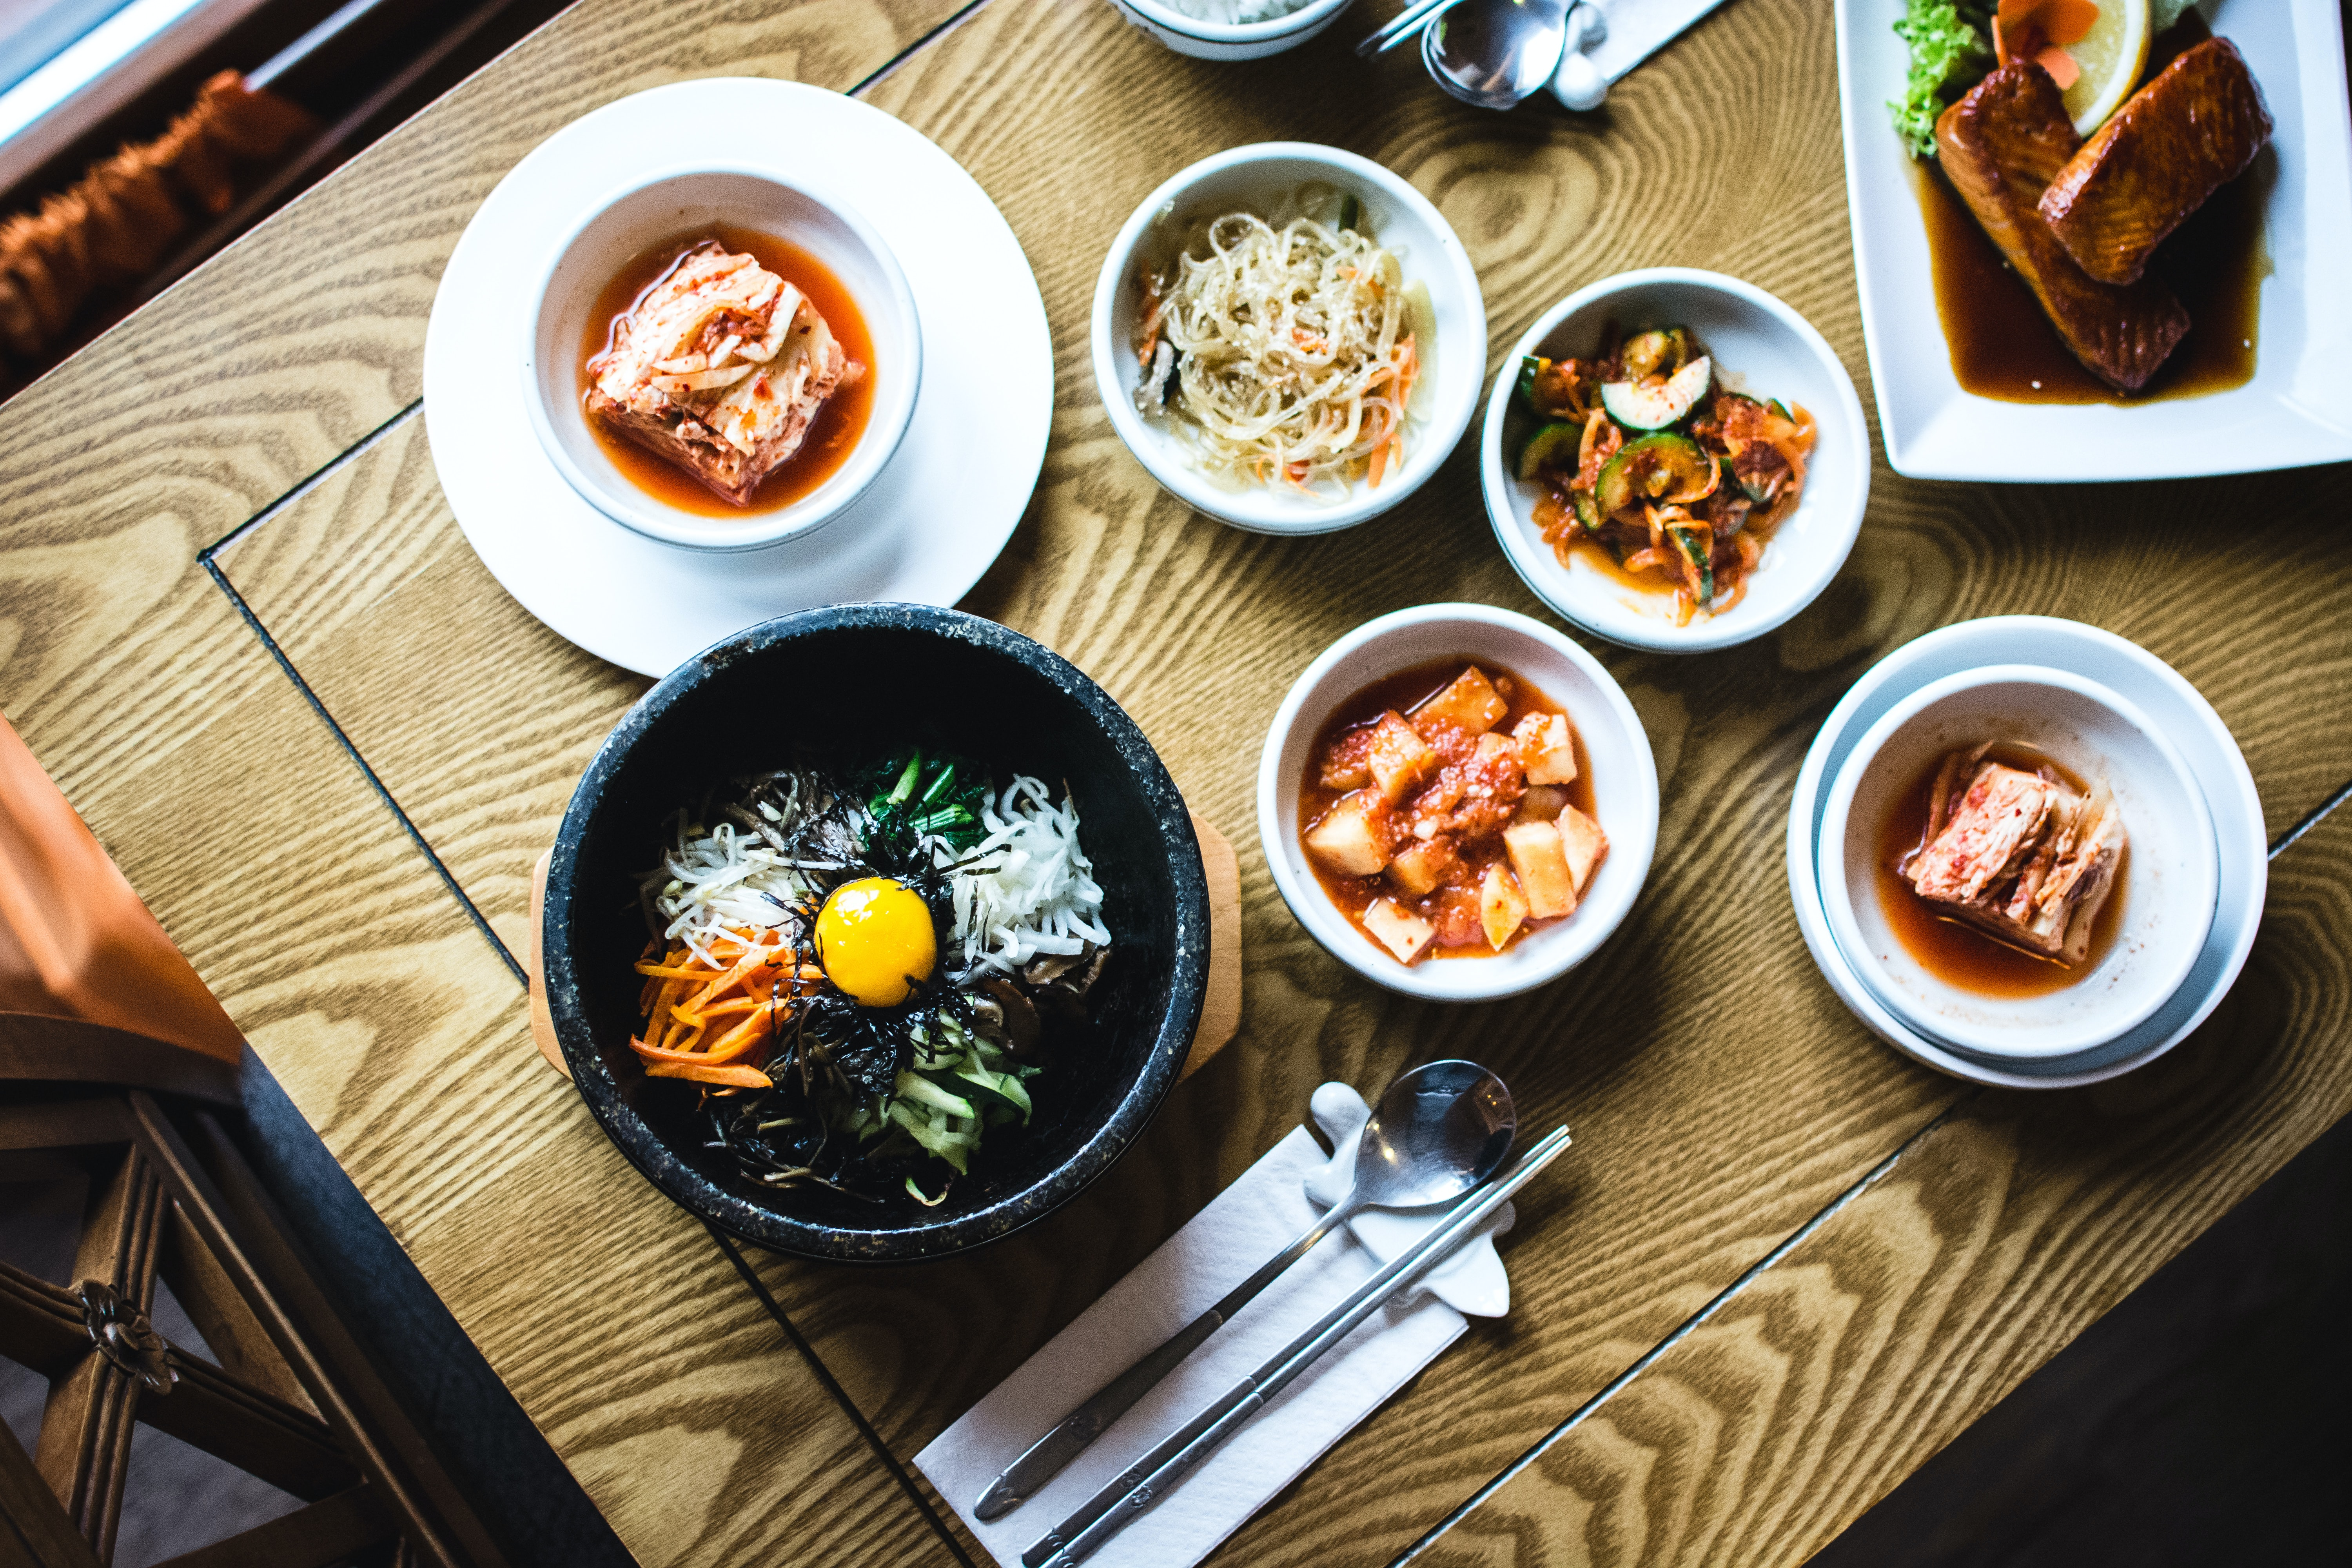 Cya Later, Seoul: Things I'll Miss About Korea The Toronto Seoulcialite Overhead shot of table with bowls of bibimbap, pho, kimchi, and Korean food